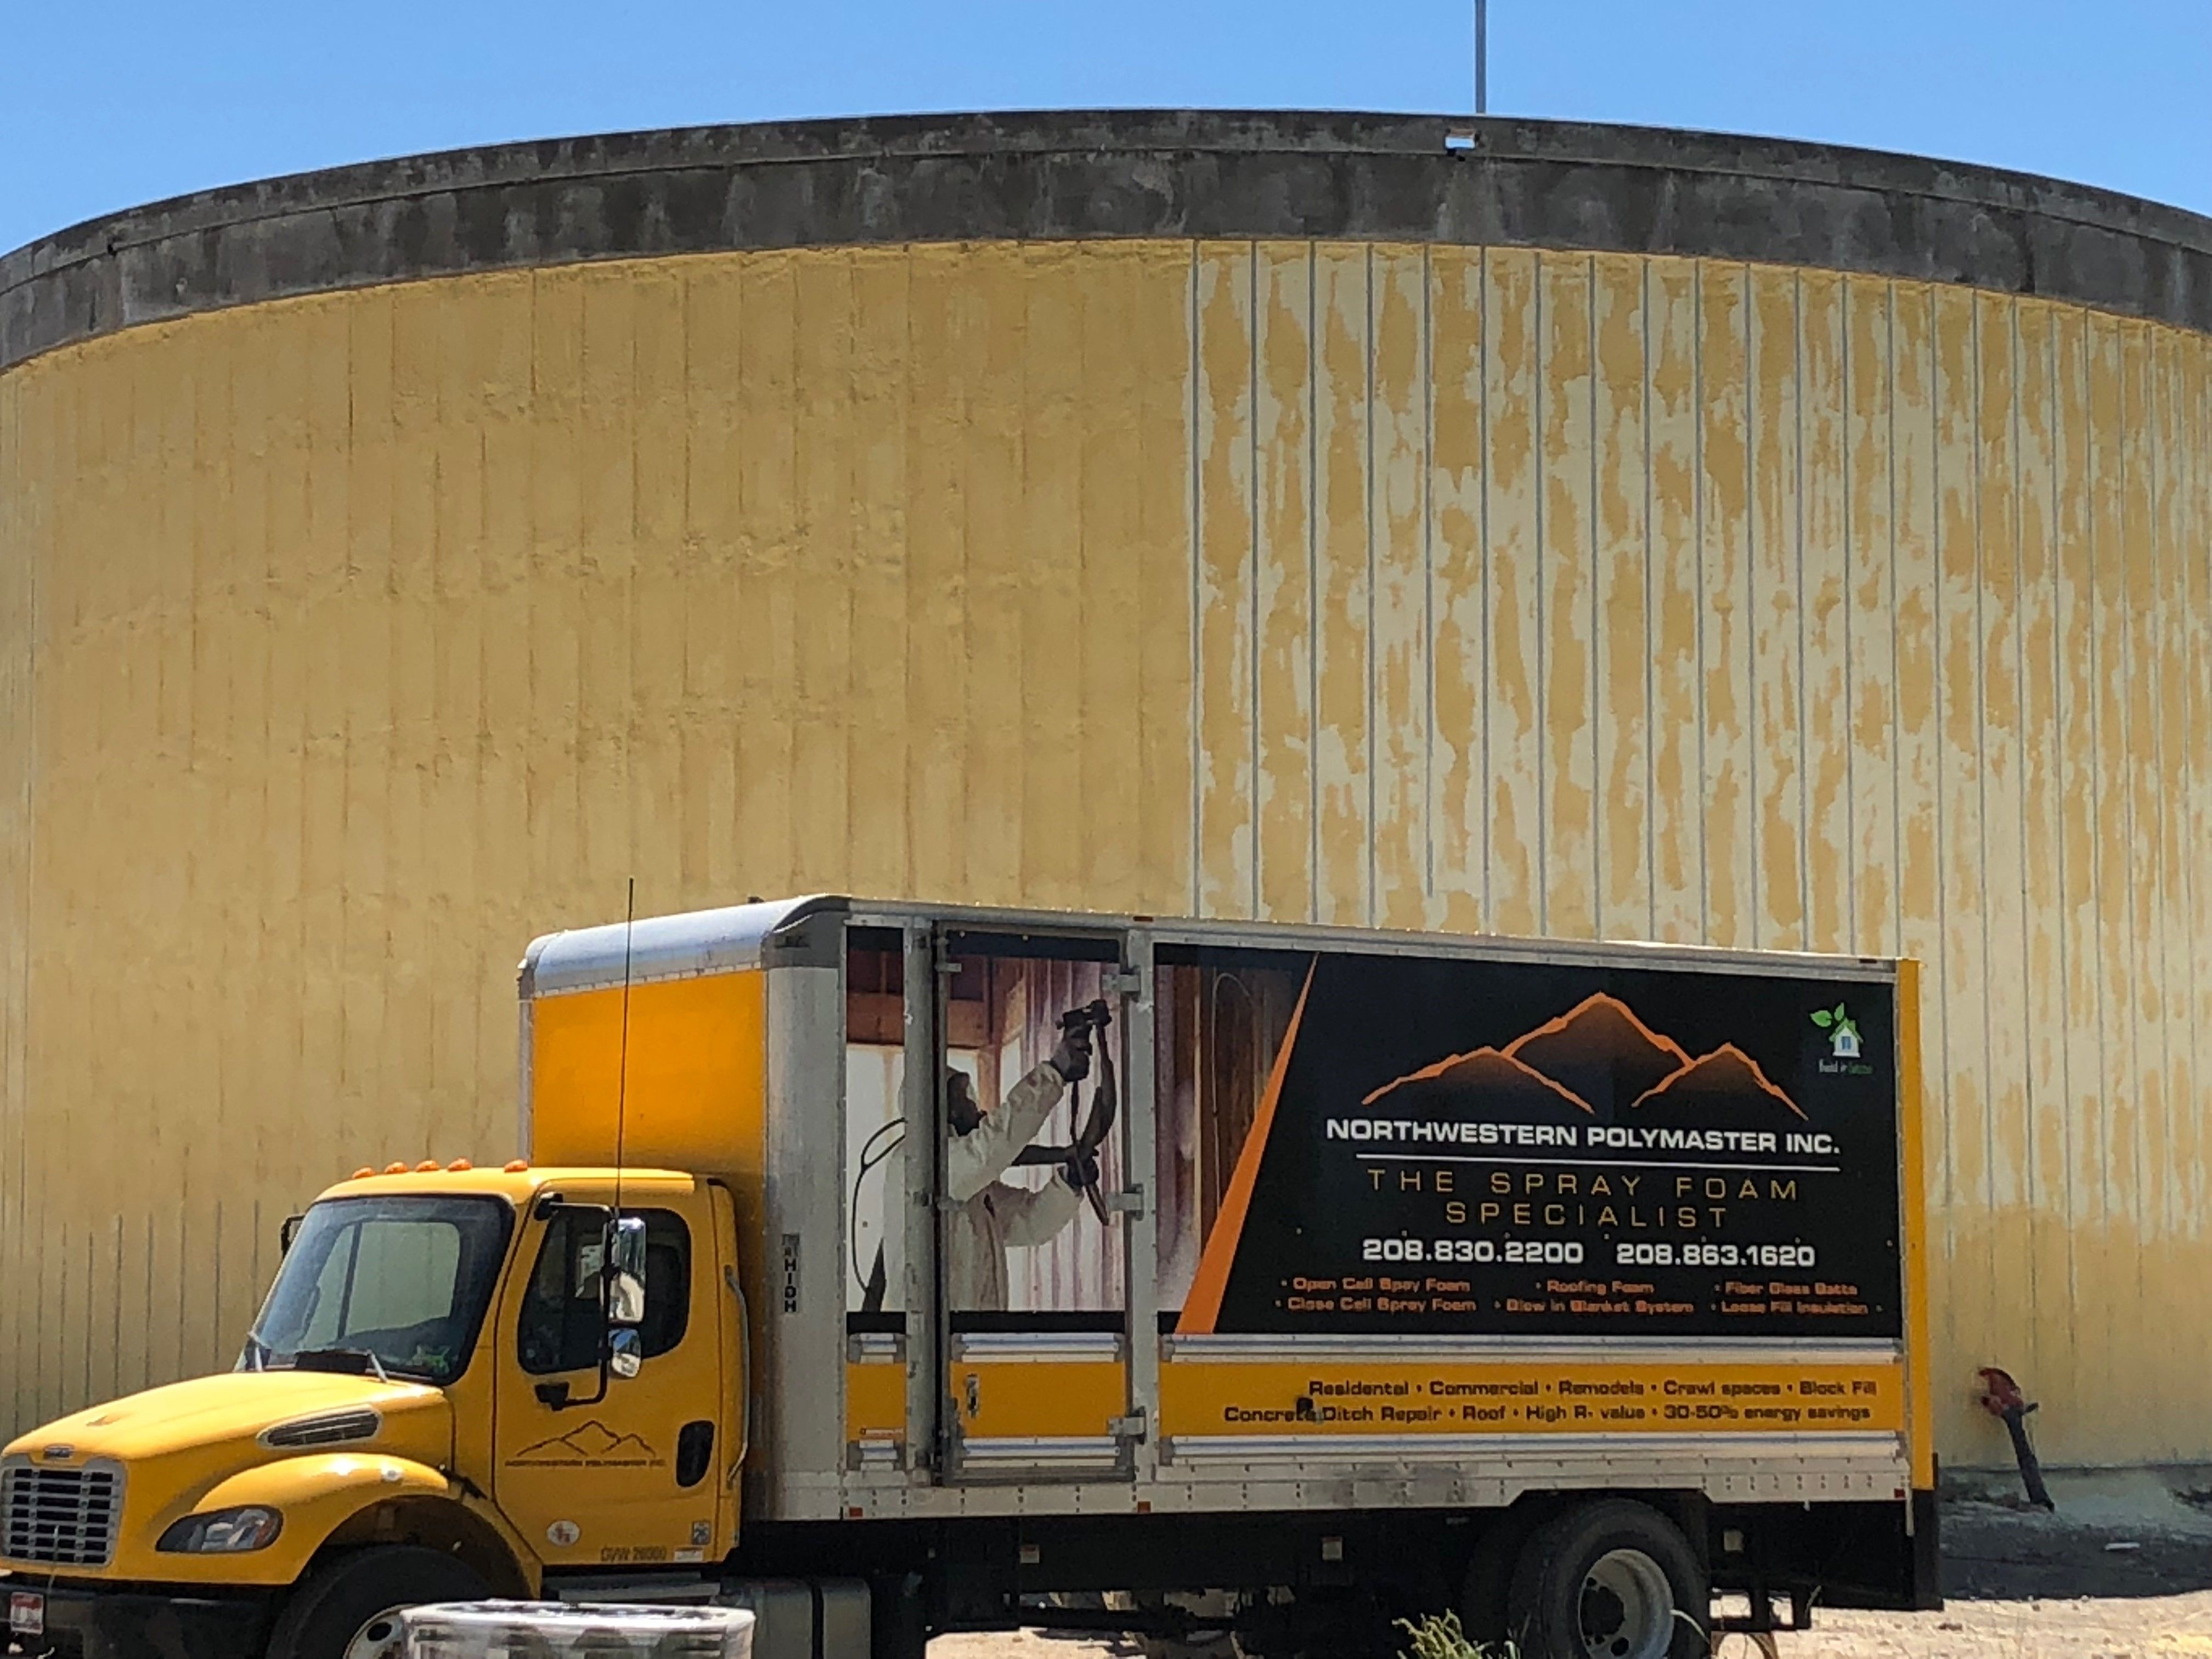 Spray Foam Insulation applied to digesters at a Waste Water